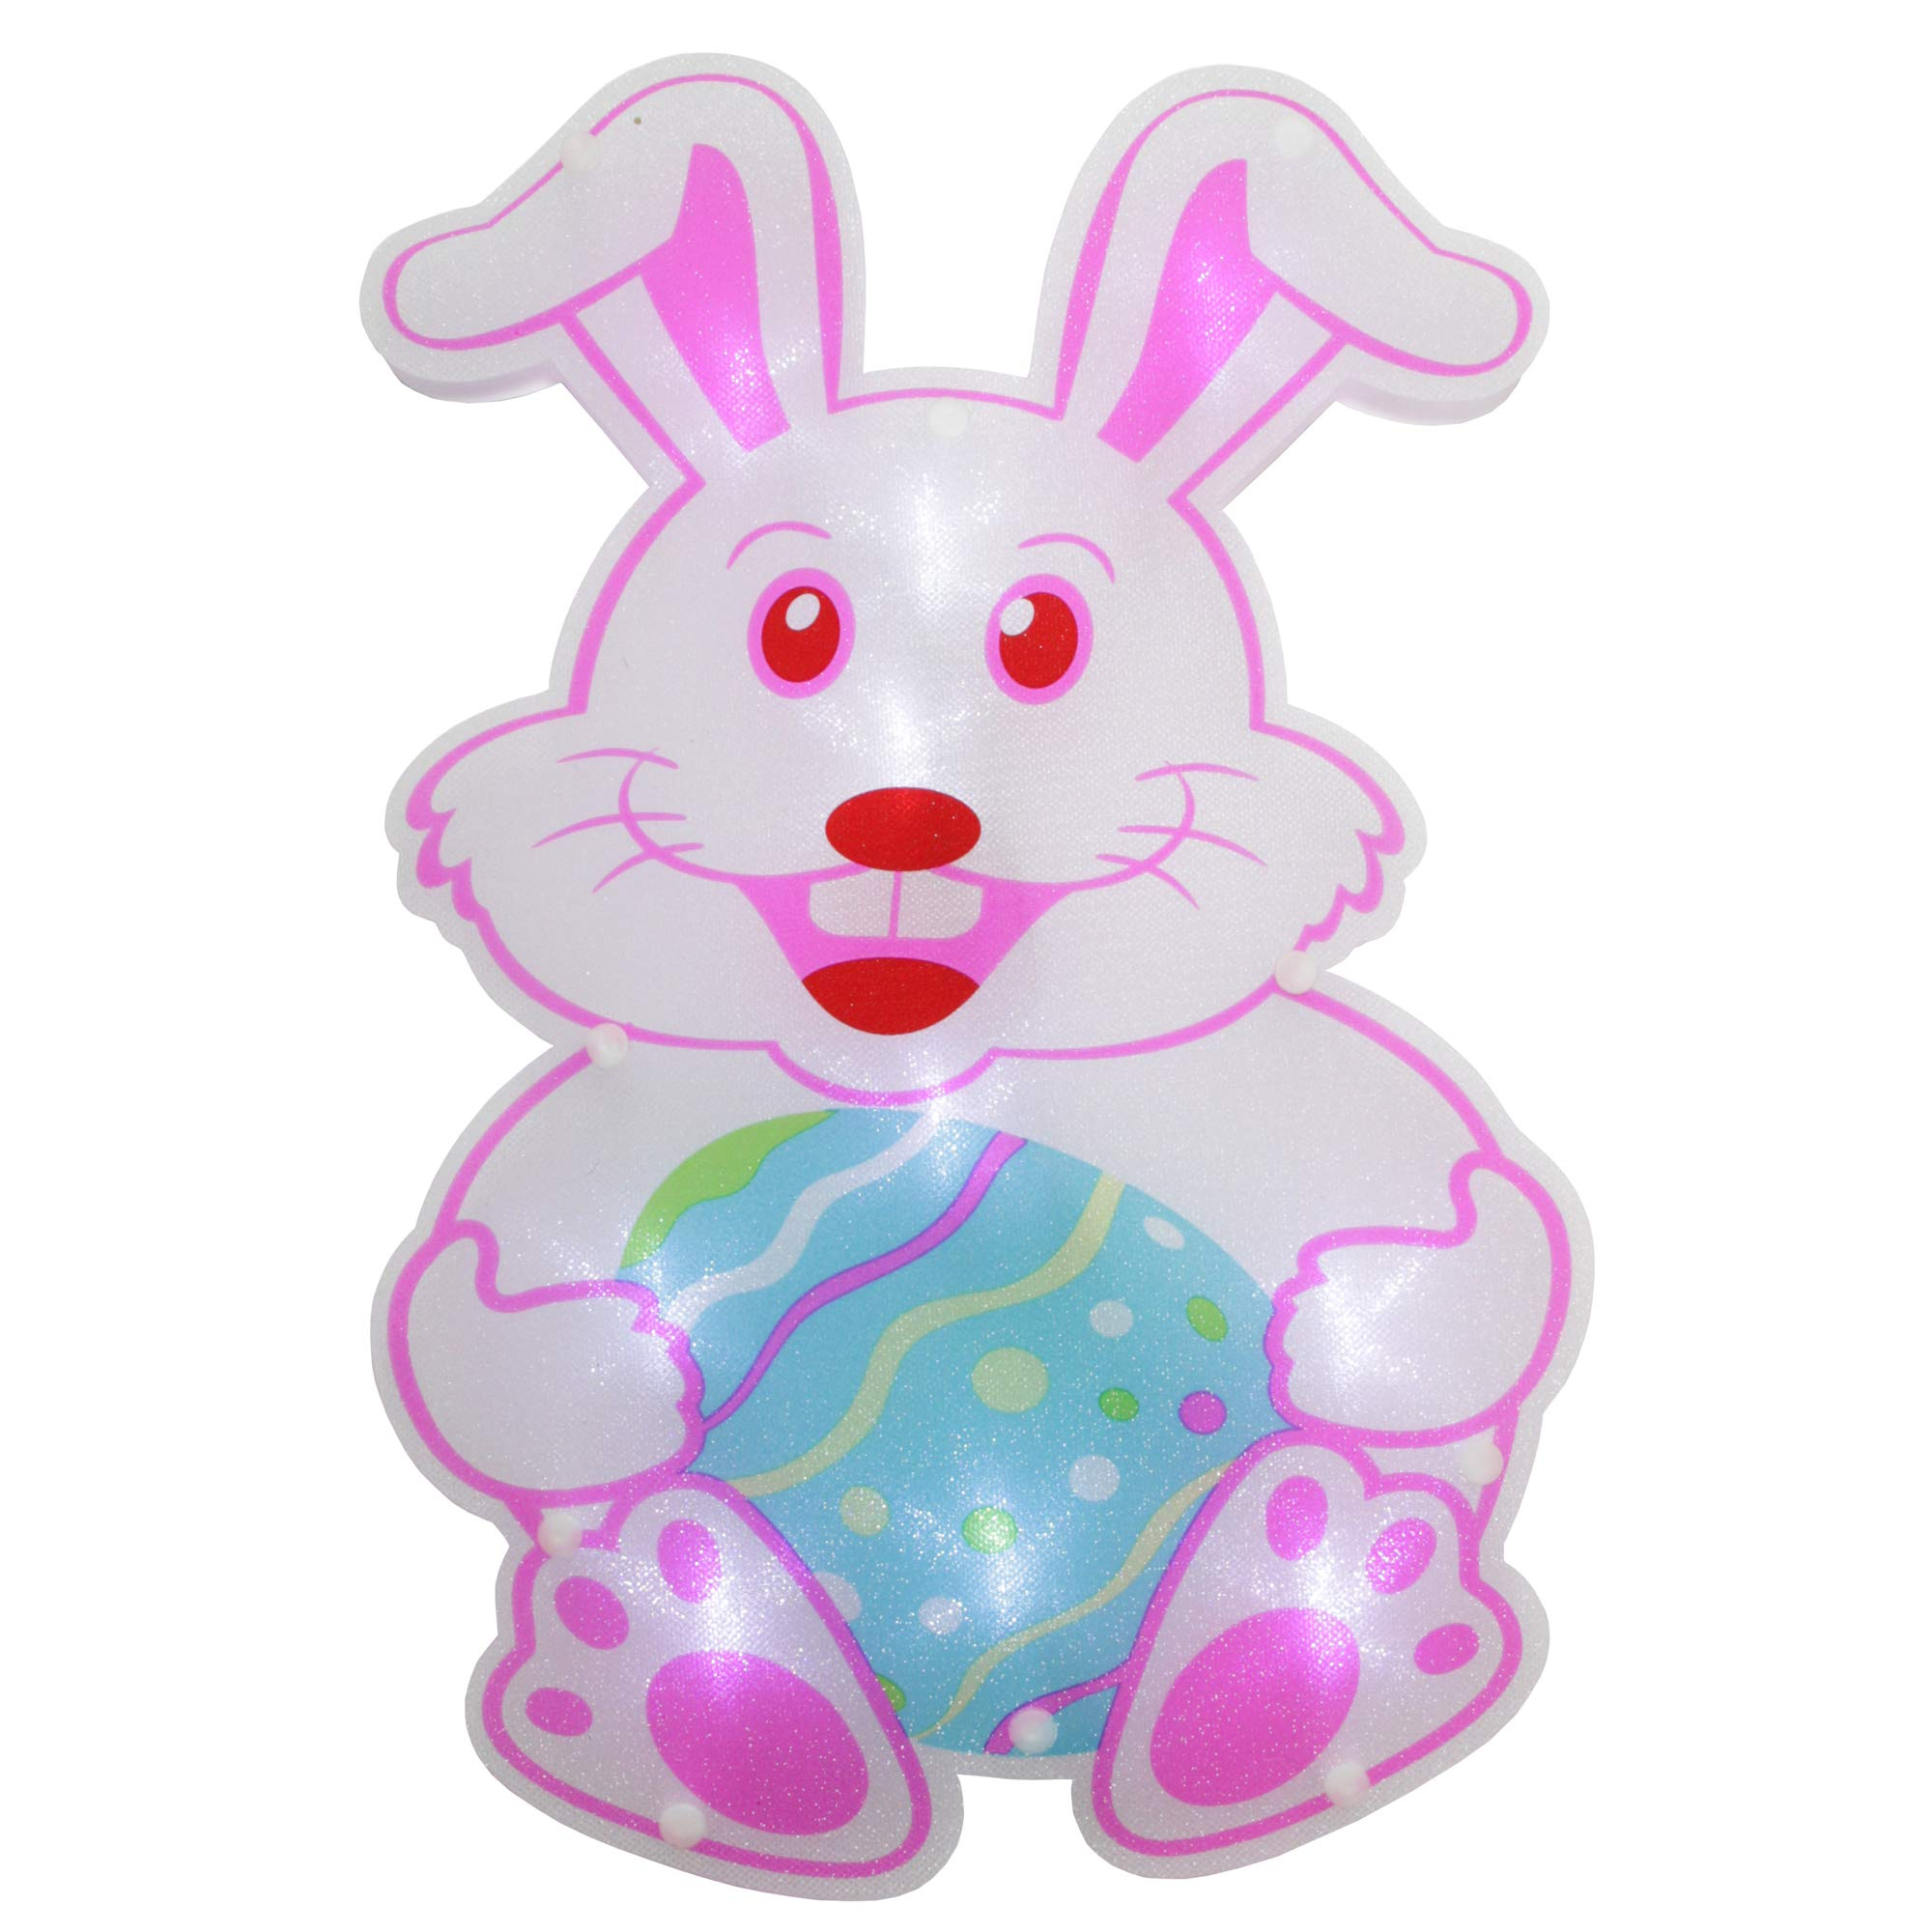 Northlight 13.75'' LED Lighted Easter Bunny Window Silhouette Decoration